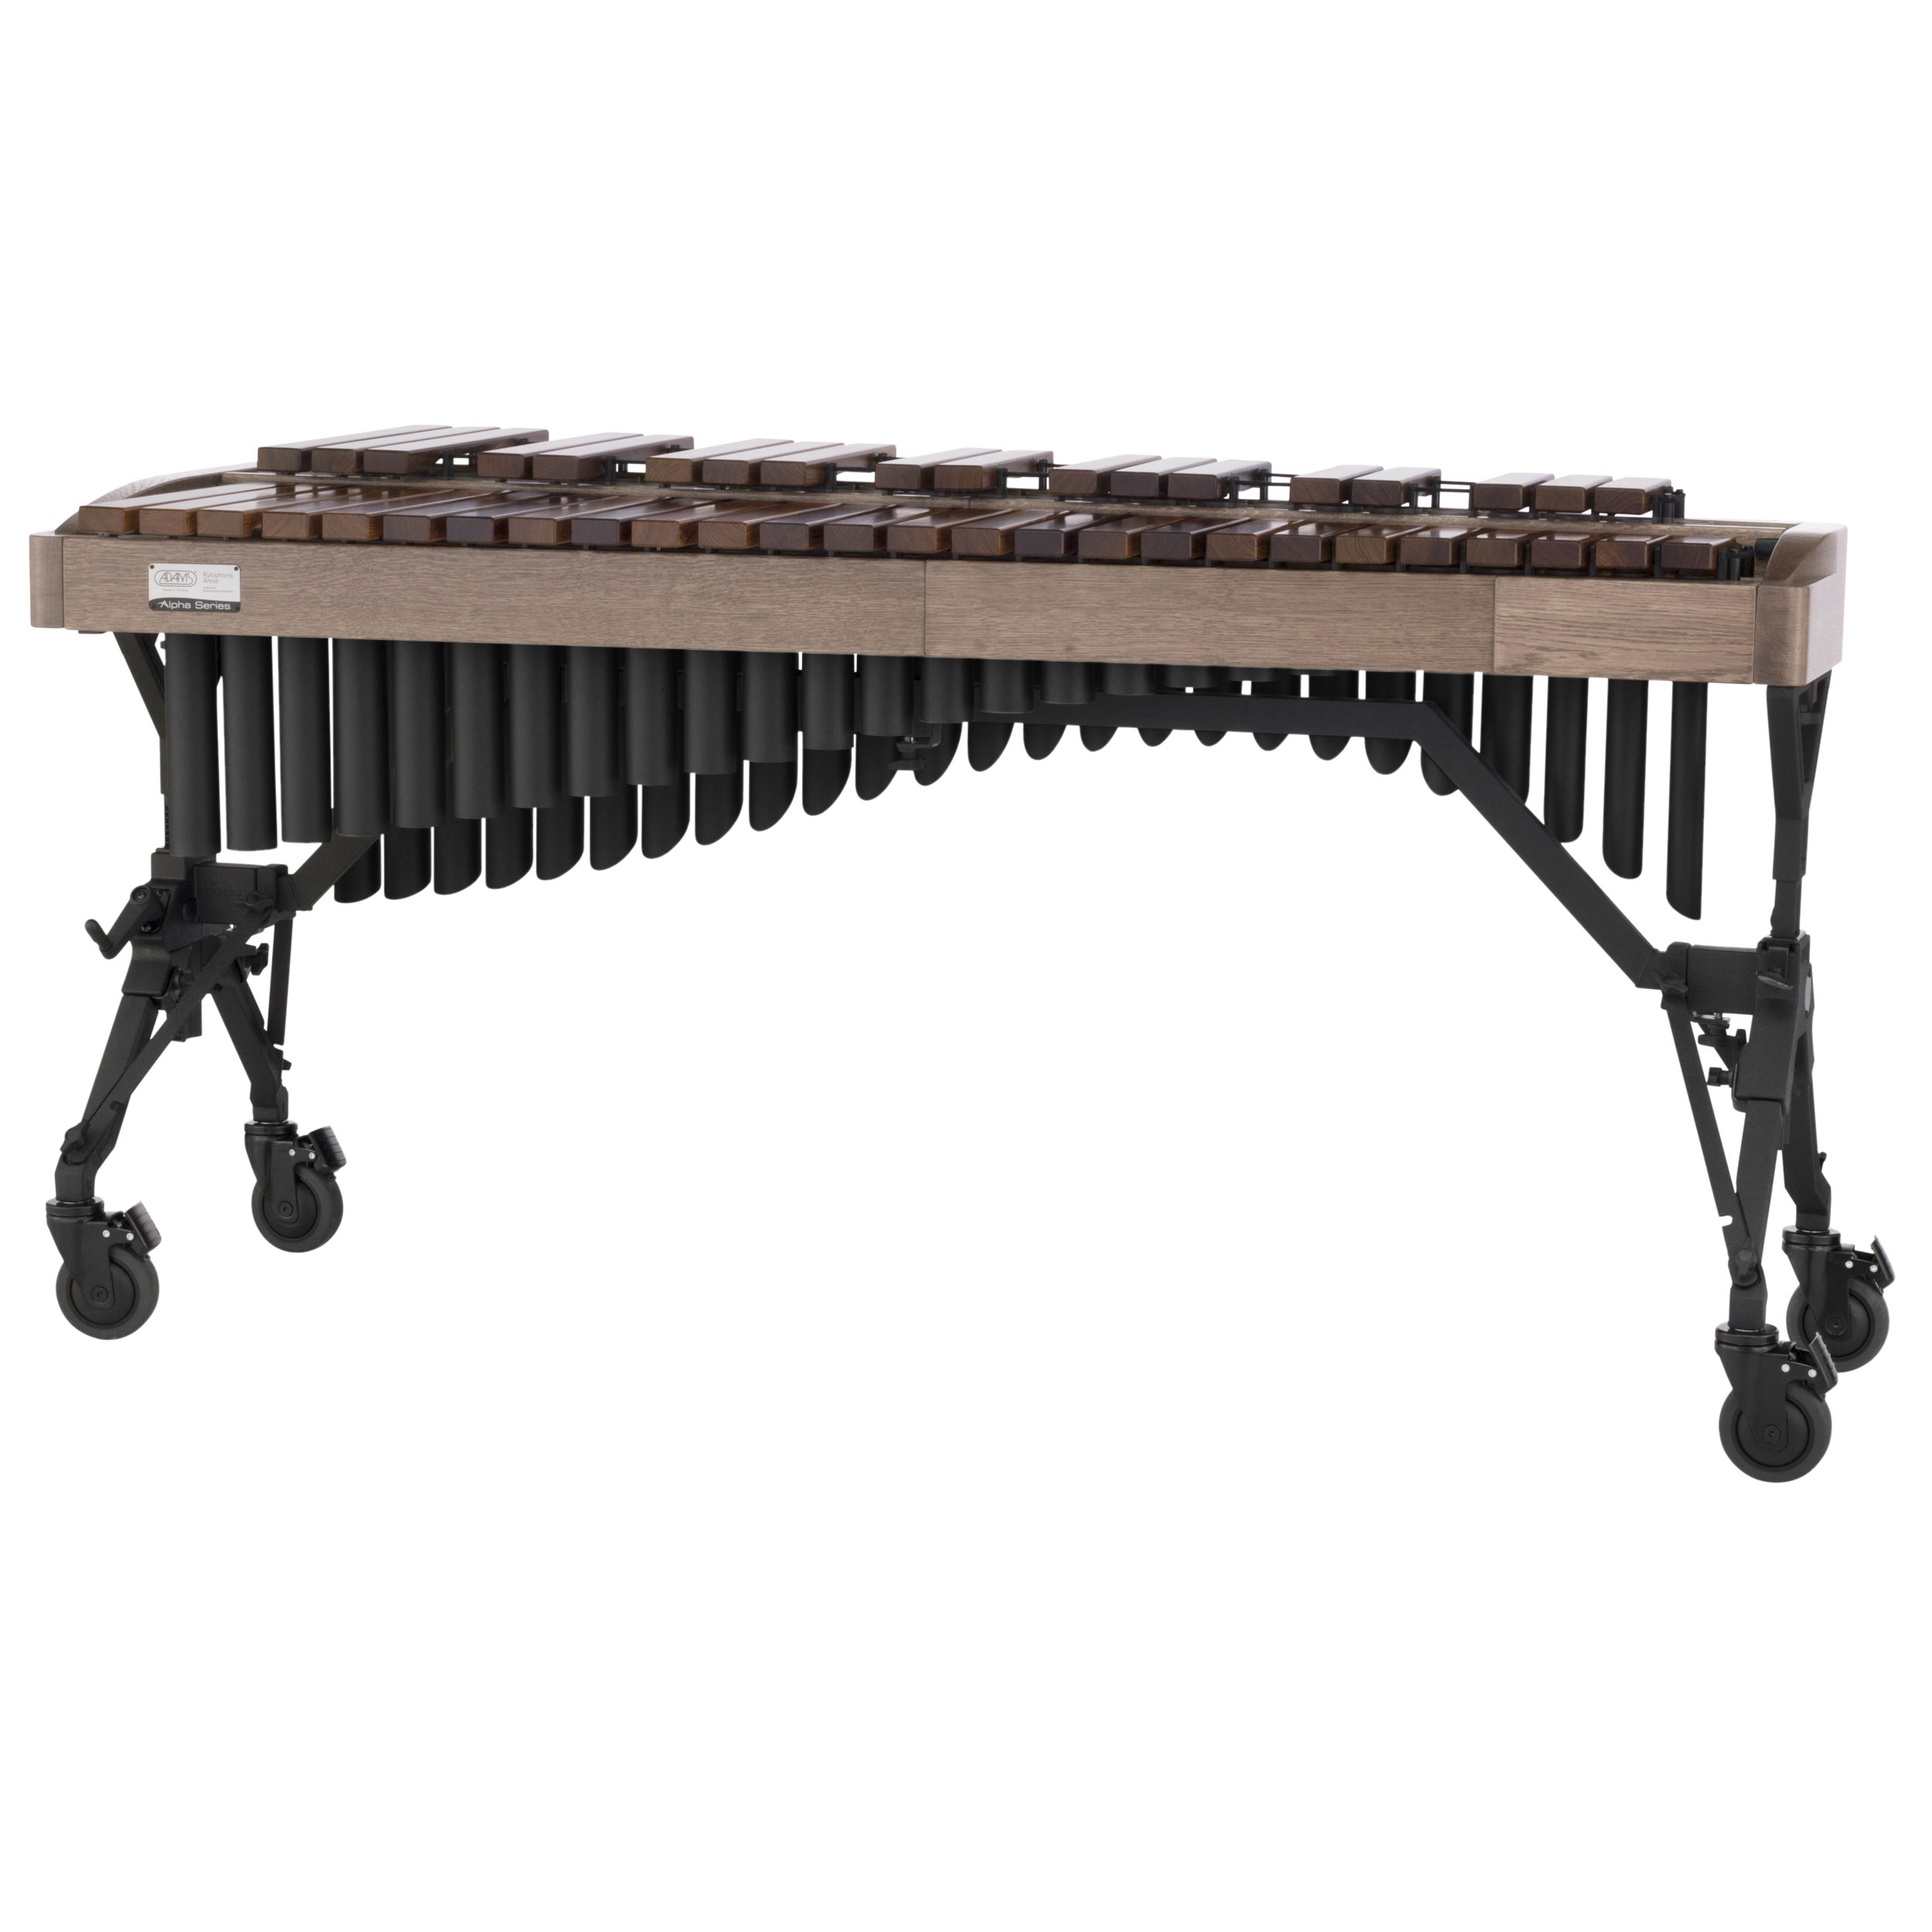 Adams 3.5 Octave Alpha Rosewood Xylophone with White Wash Oak Rails & Black Resonators